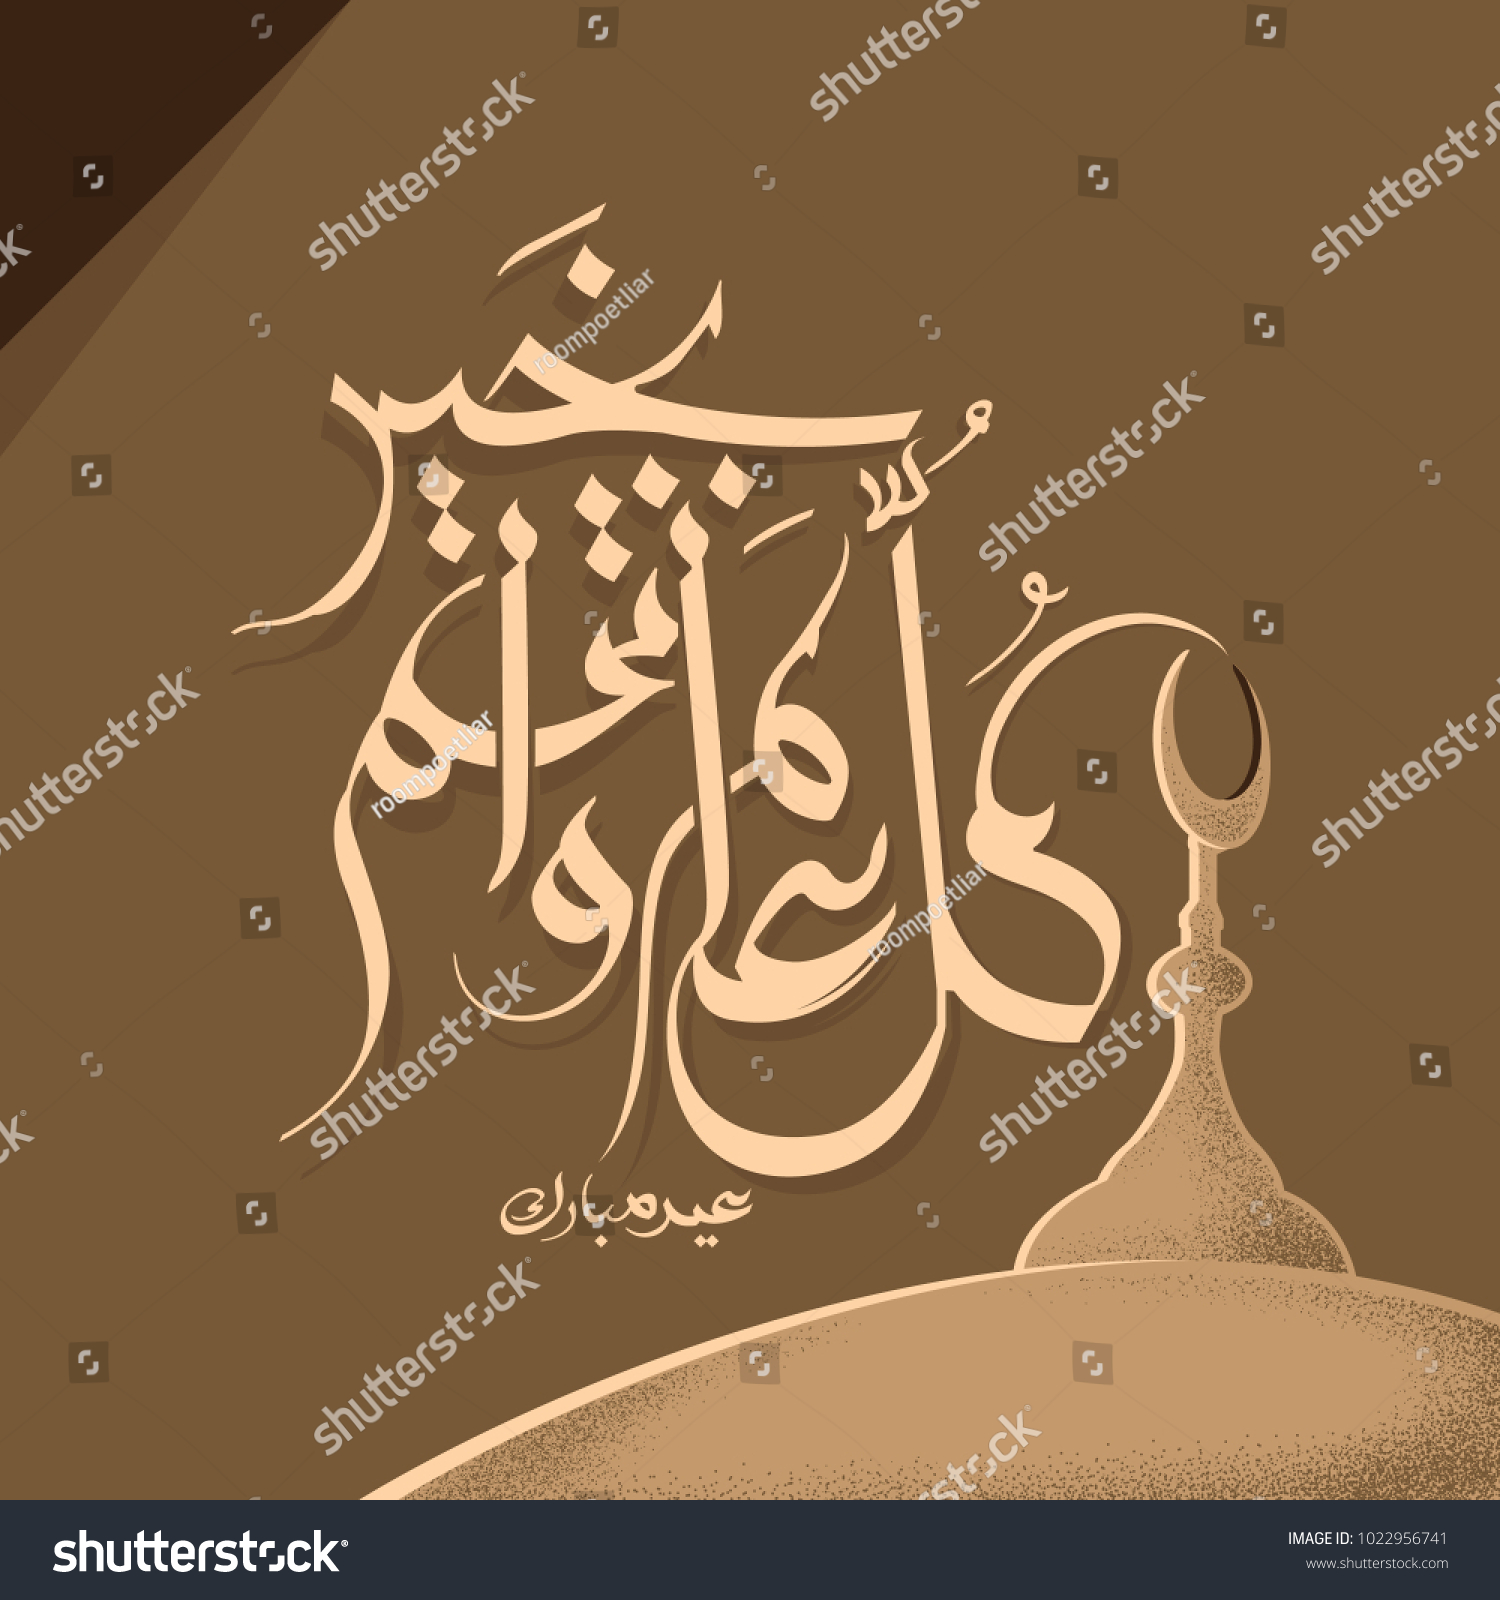 Eid al fitr mobarak greeting card stock vector 1022956741 shutterstock eid al fitr mobarak greeting card arabic calligraphy translation wishes of a prosperous kristyandbryce Gallery